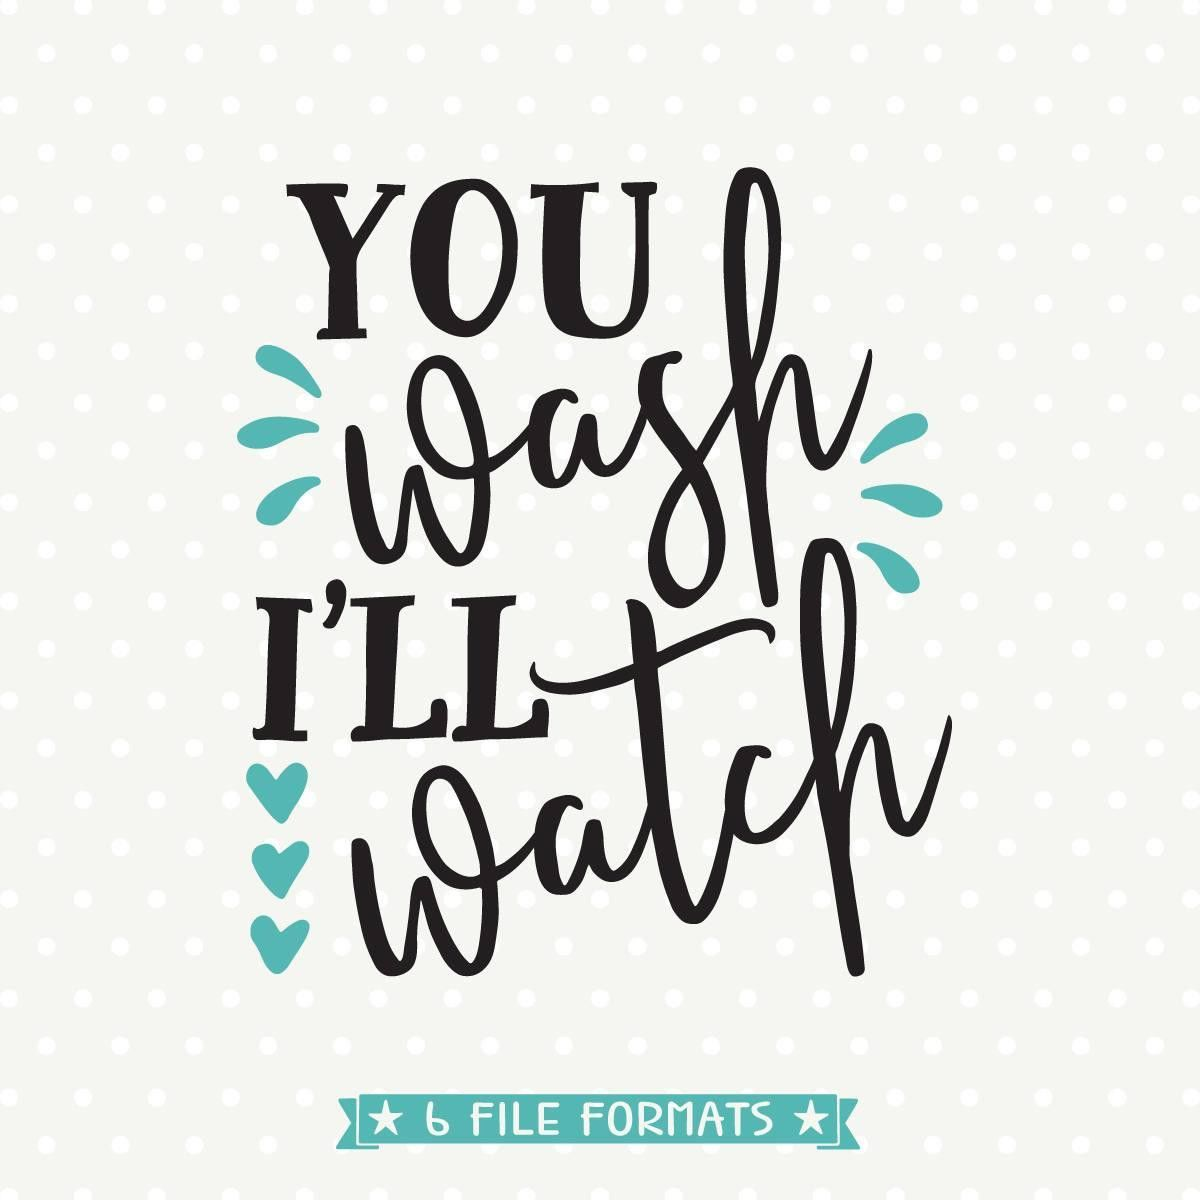 You wash ill watch svg funny kitchen quote svg tea towel cut file you wash svg file tea towel design commercial svg file svg cut file